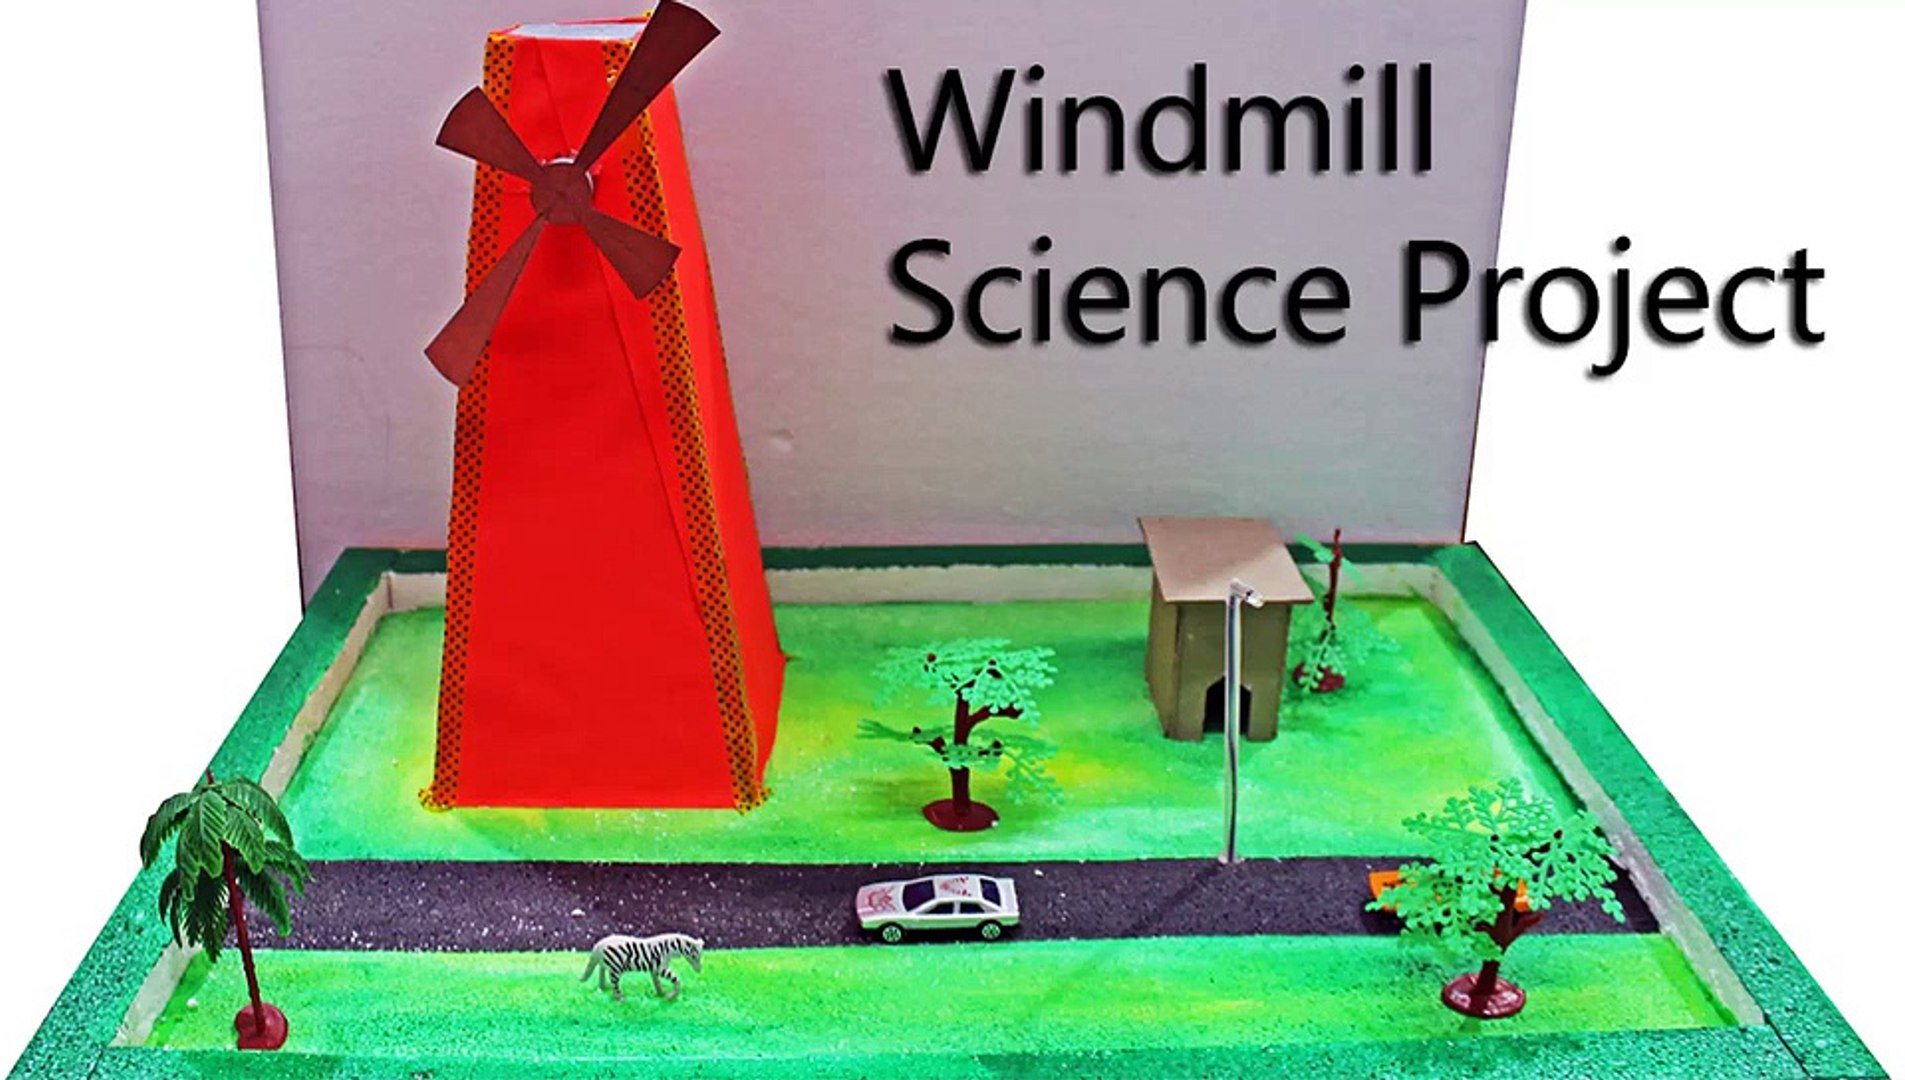 Windmill Model Science Crat Project S81 782 842 10